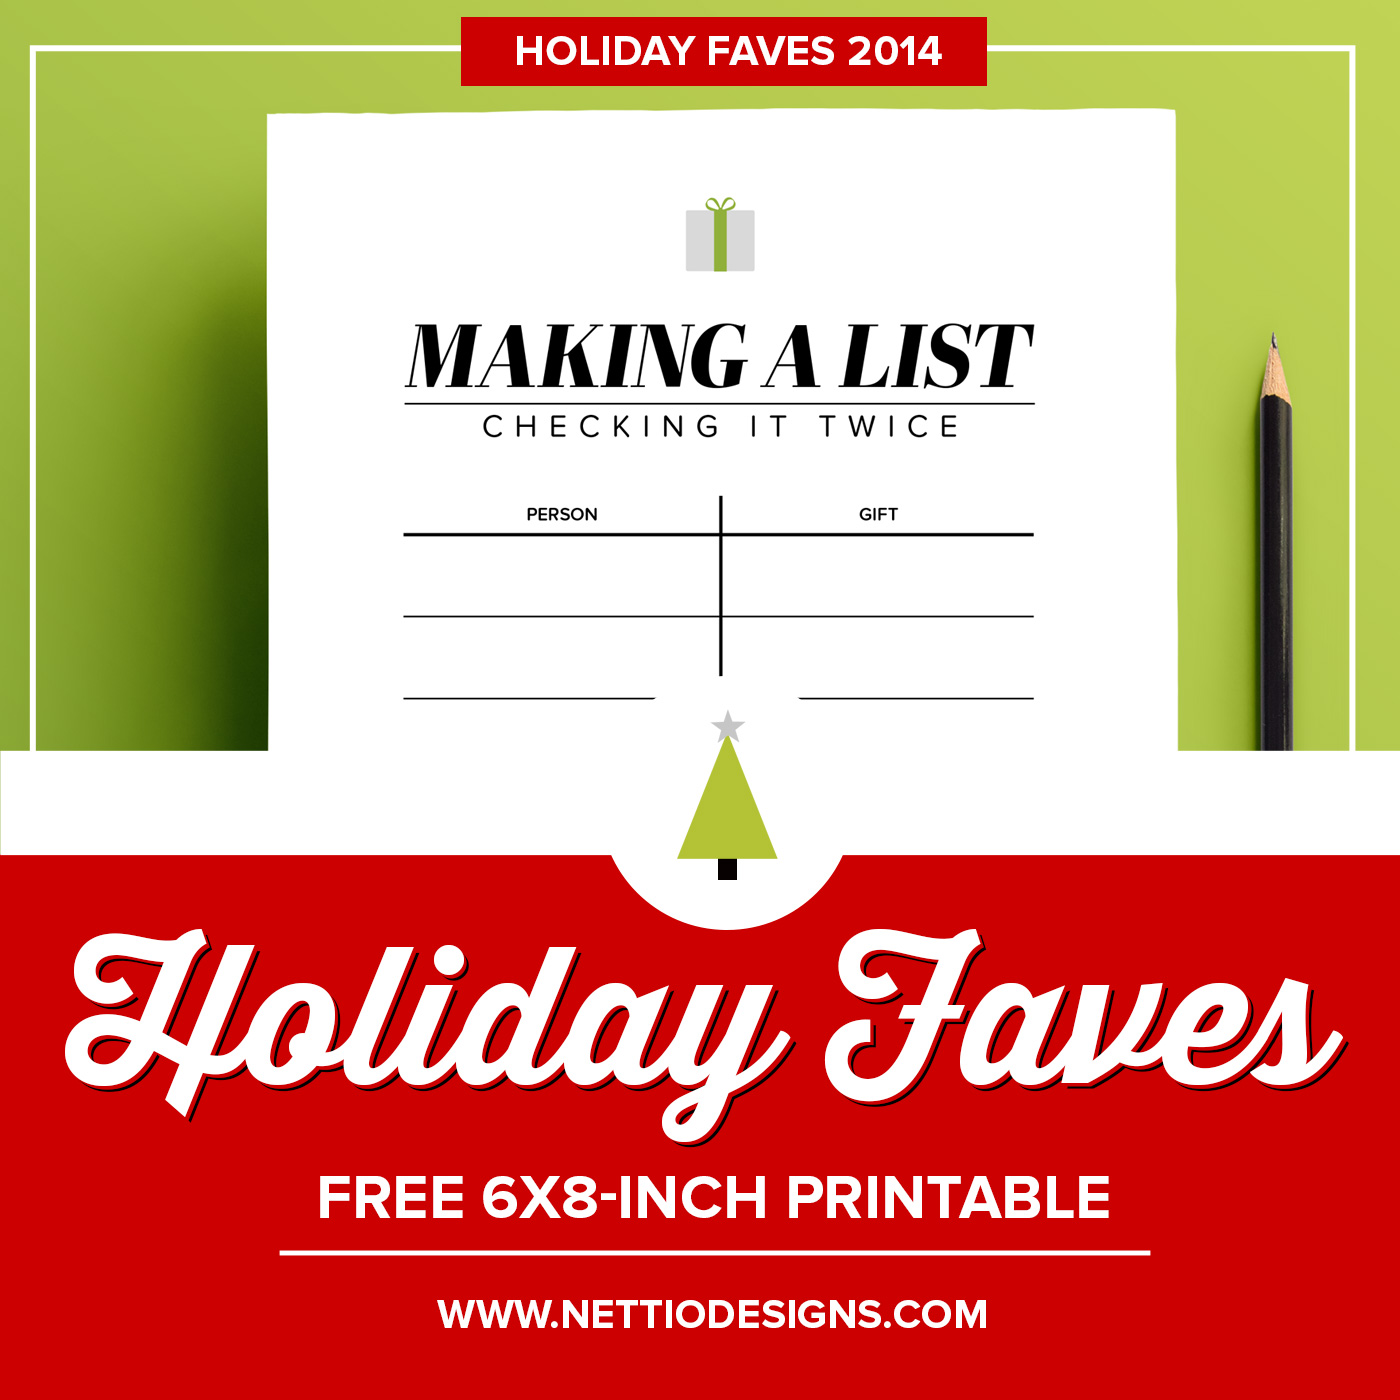 holiday faves 6×8 printable template making a list the holiday faves 6×8 inch printable template here